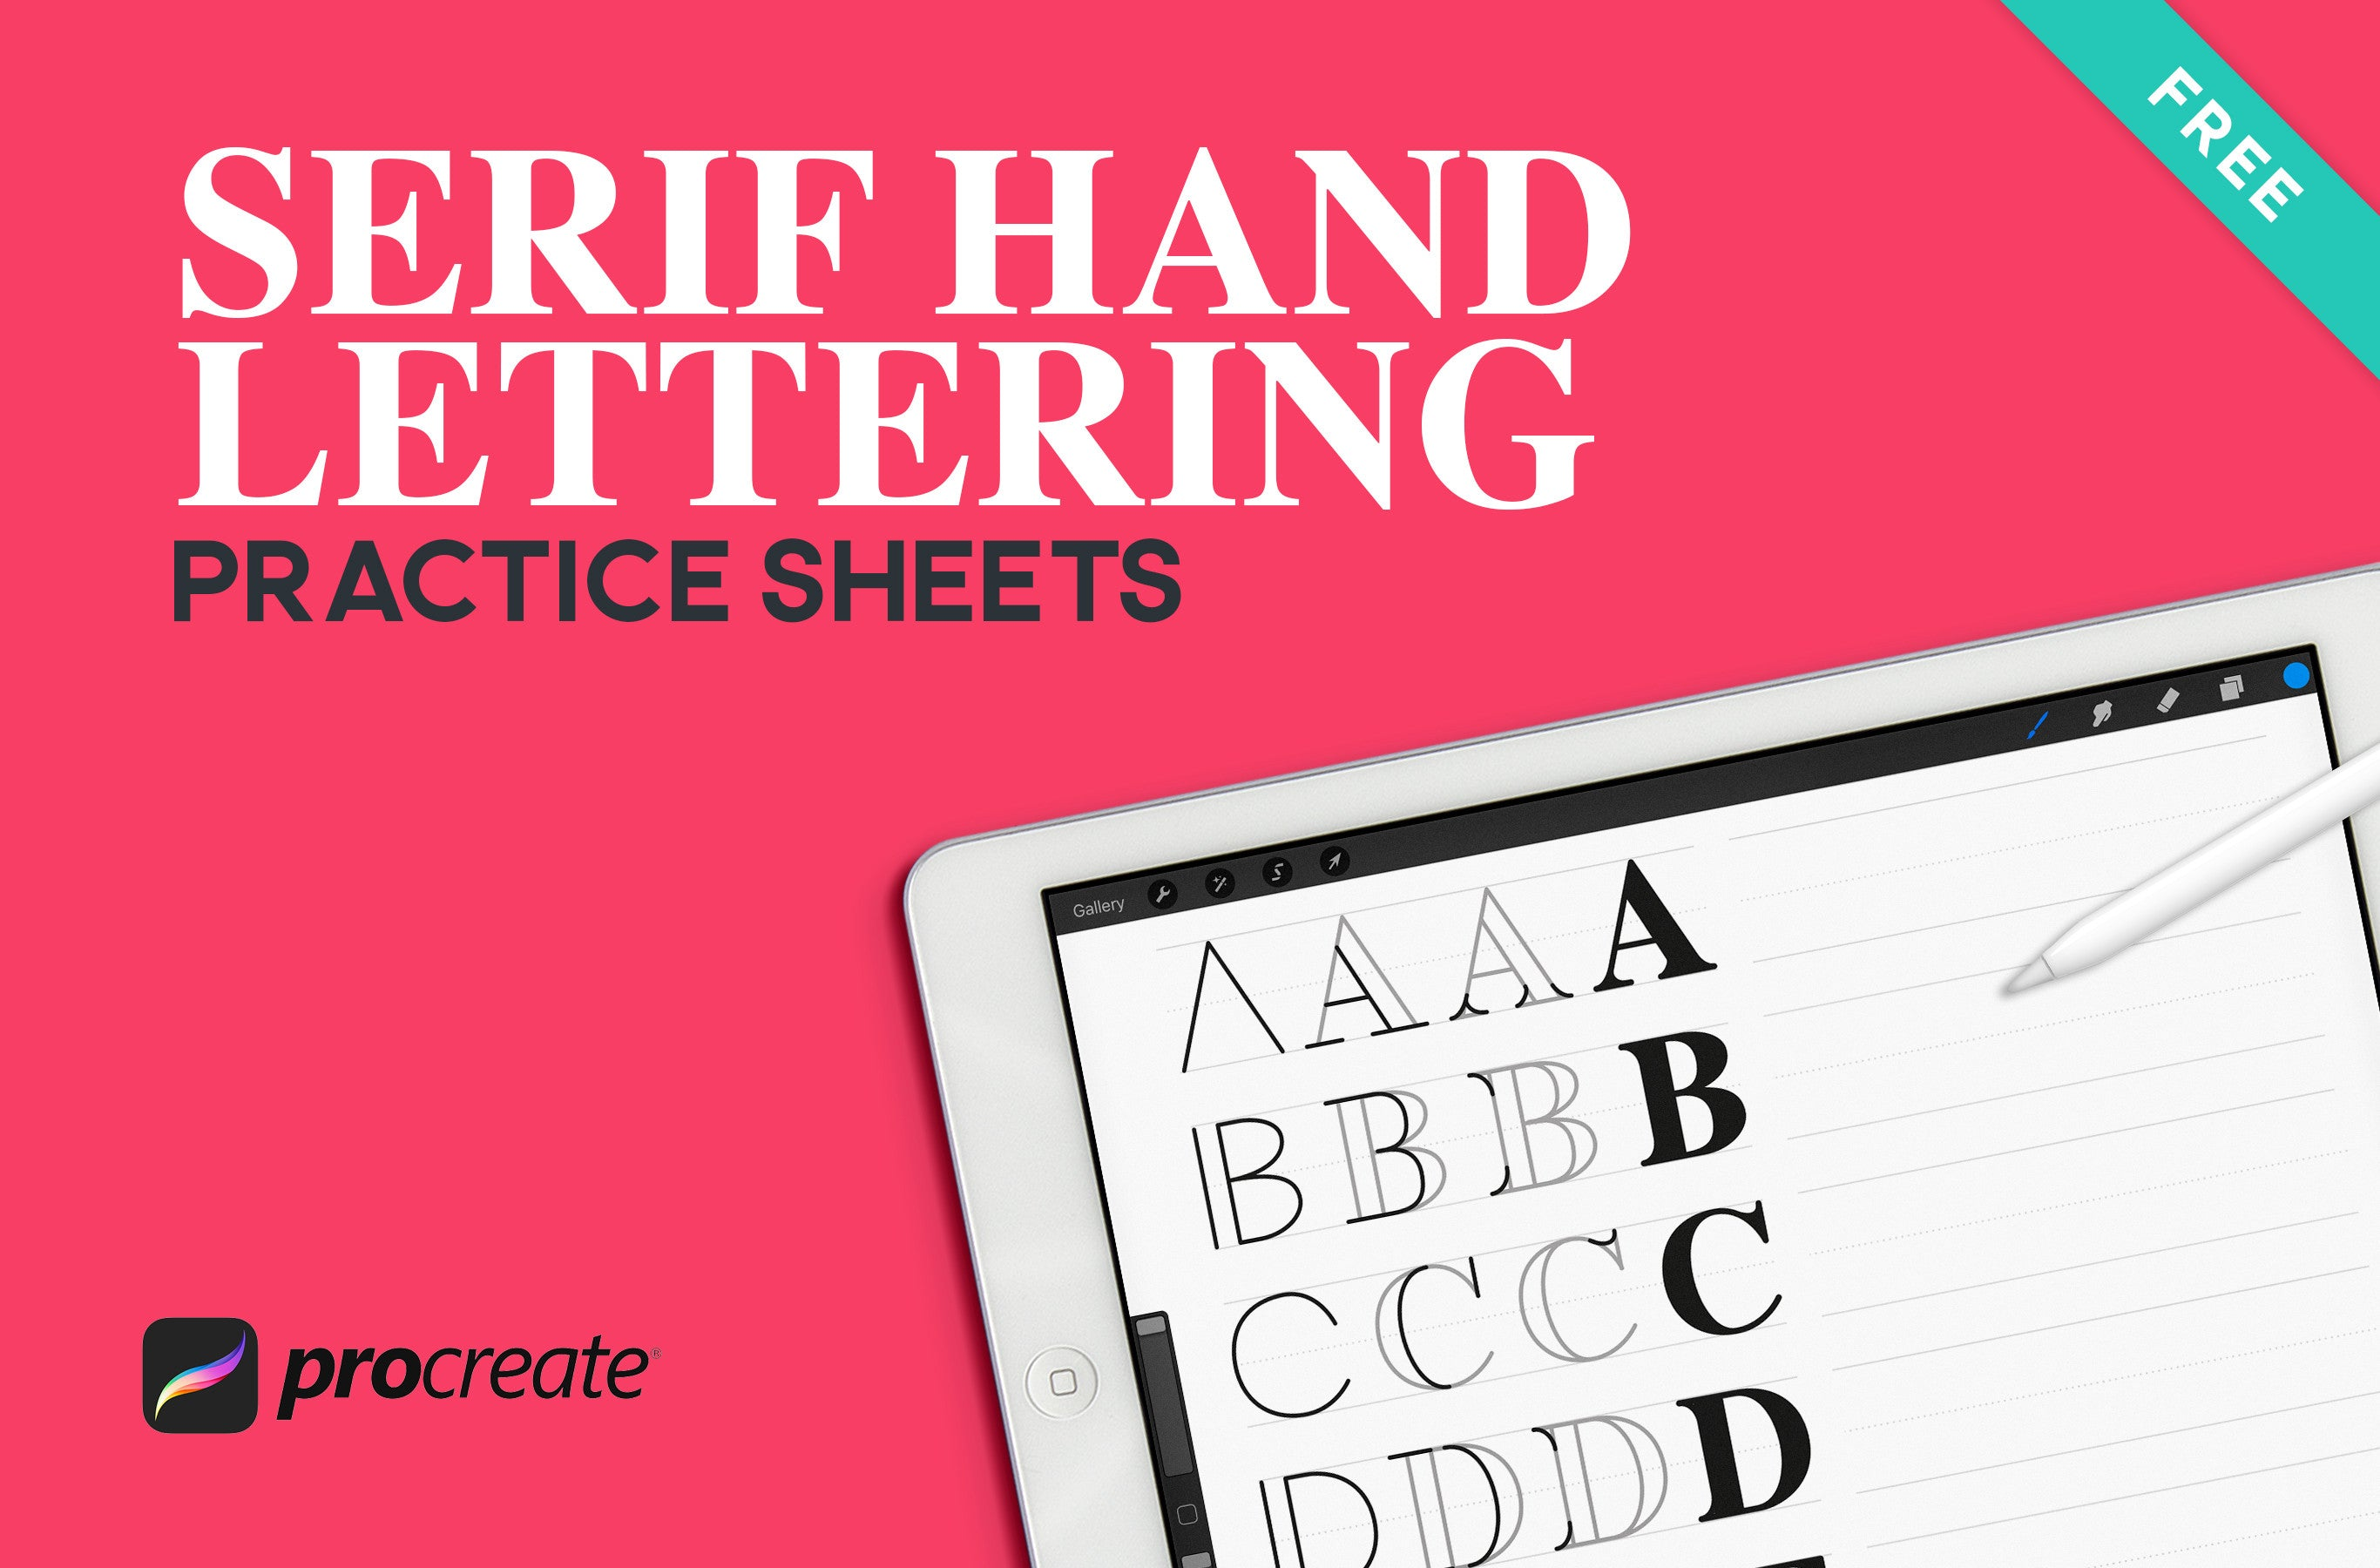 Serif Hand Lettering Worksheets for Procreate